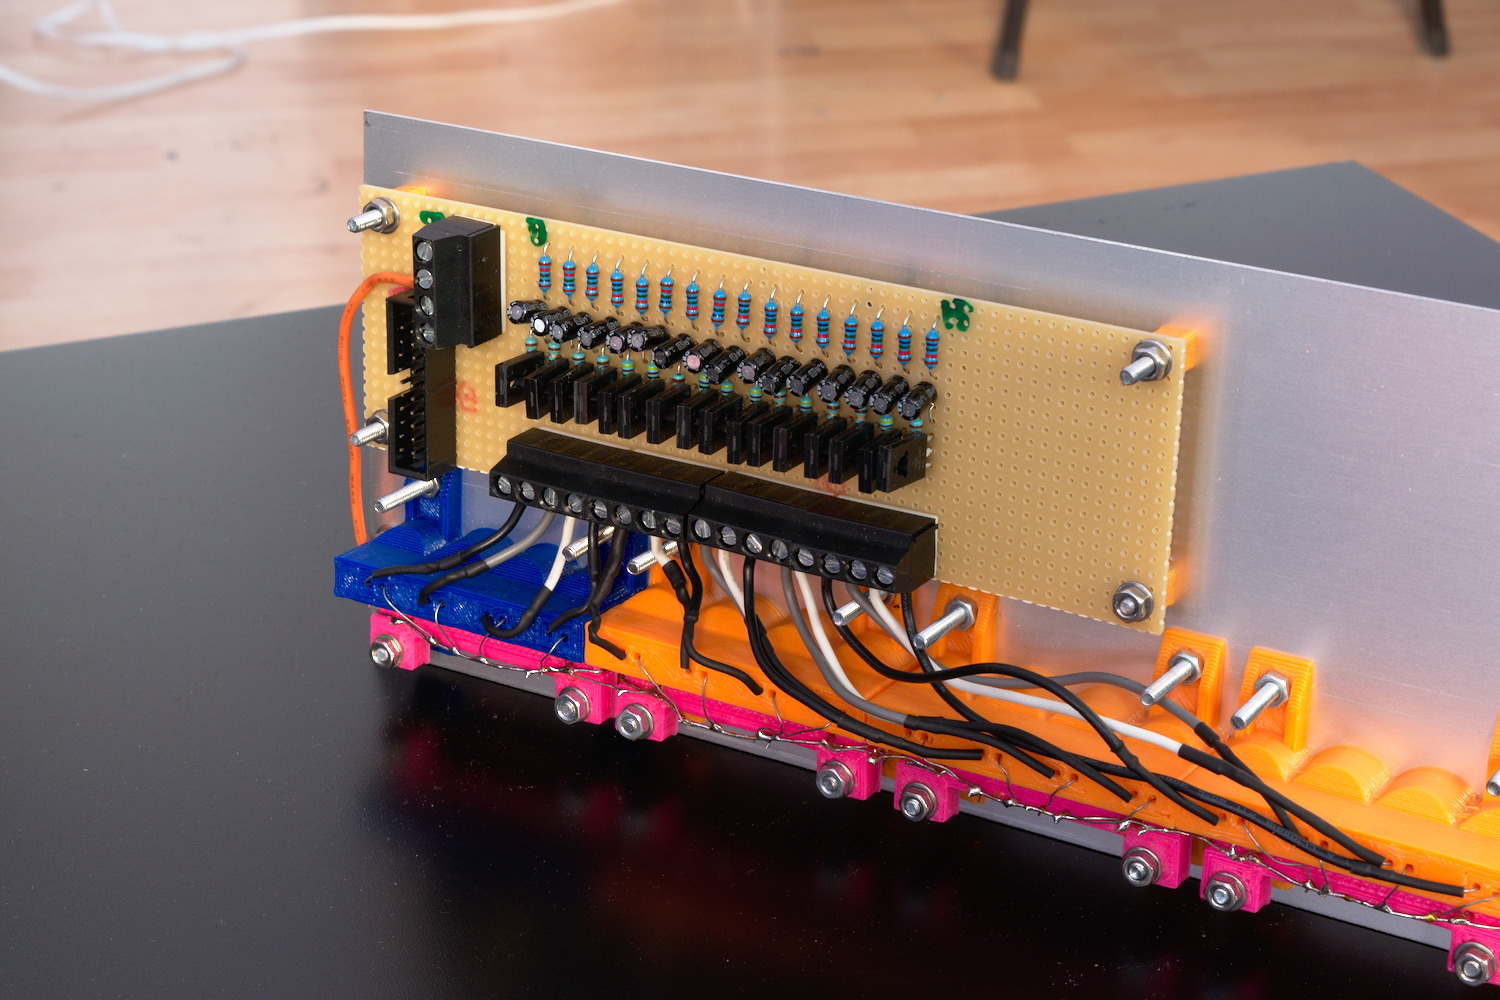 Detailed view of the nixie tube driver board